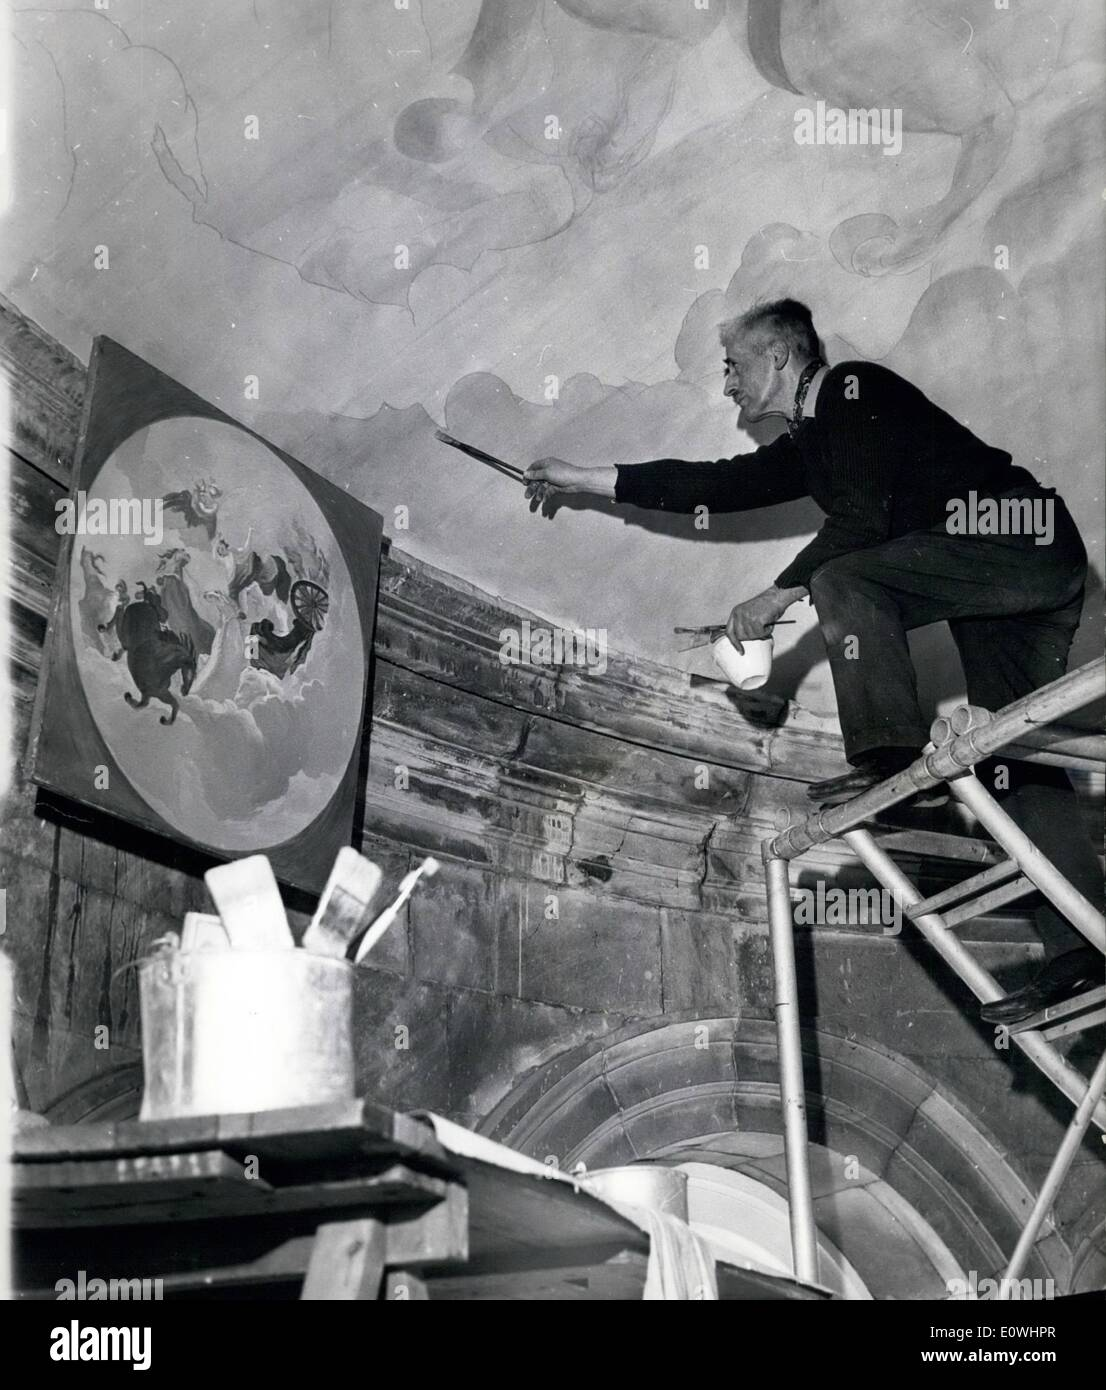 May 05, 1963 - Artist with a head for heights.: 51 year old Canadian artist Scott Ackerman Medd, who is art director of the British School in Rome. is painting a mural 80ft above the entrance hall to Castle Howard, one of Yorkshire's stately homes. He is protected by a safety net specially constructed by a shop rig-gin company. The mural is from Italian masterix Antonio Pellegrini's ''The all of Phaeton'', and replaces the original mural which was destroyed by fore 23 years ago. Photo shows Mr. Medd at work on his mural. - Stock Image